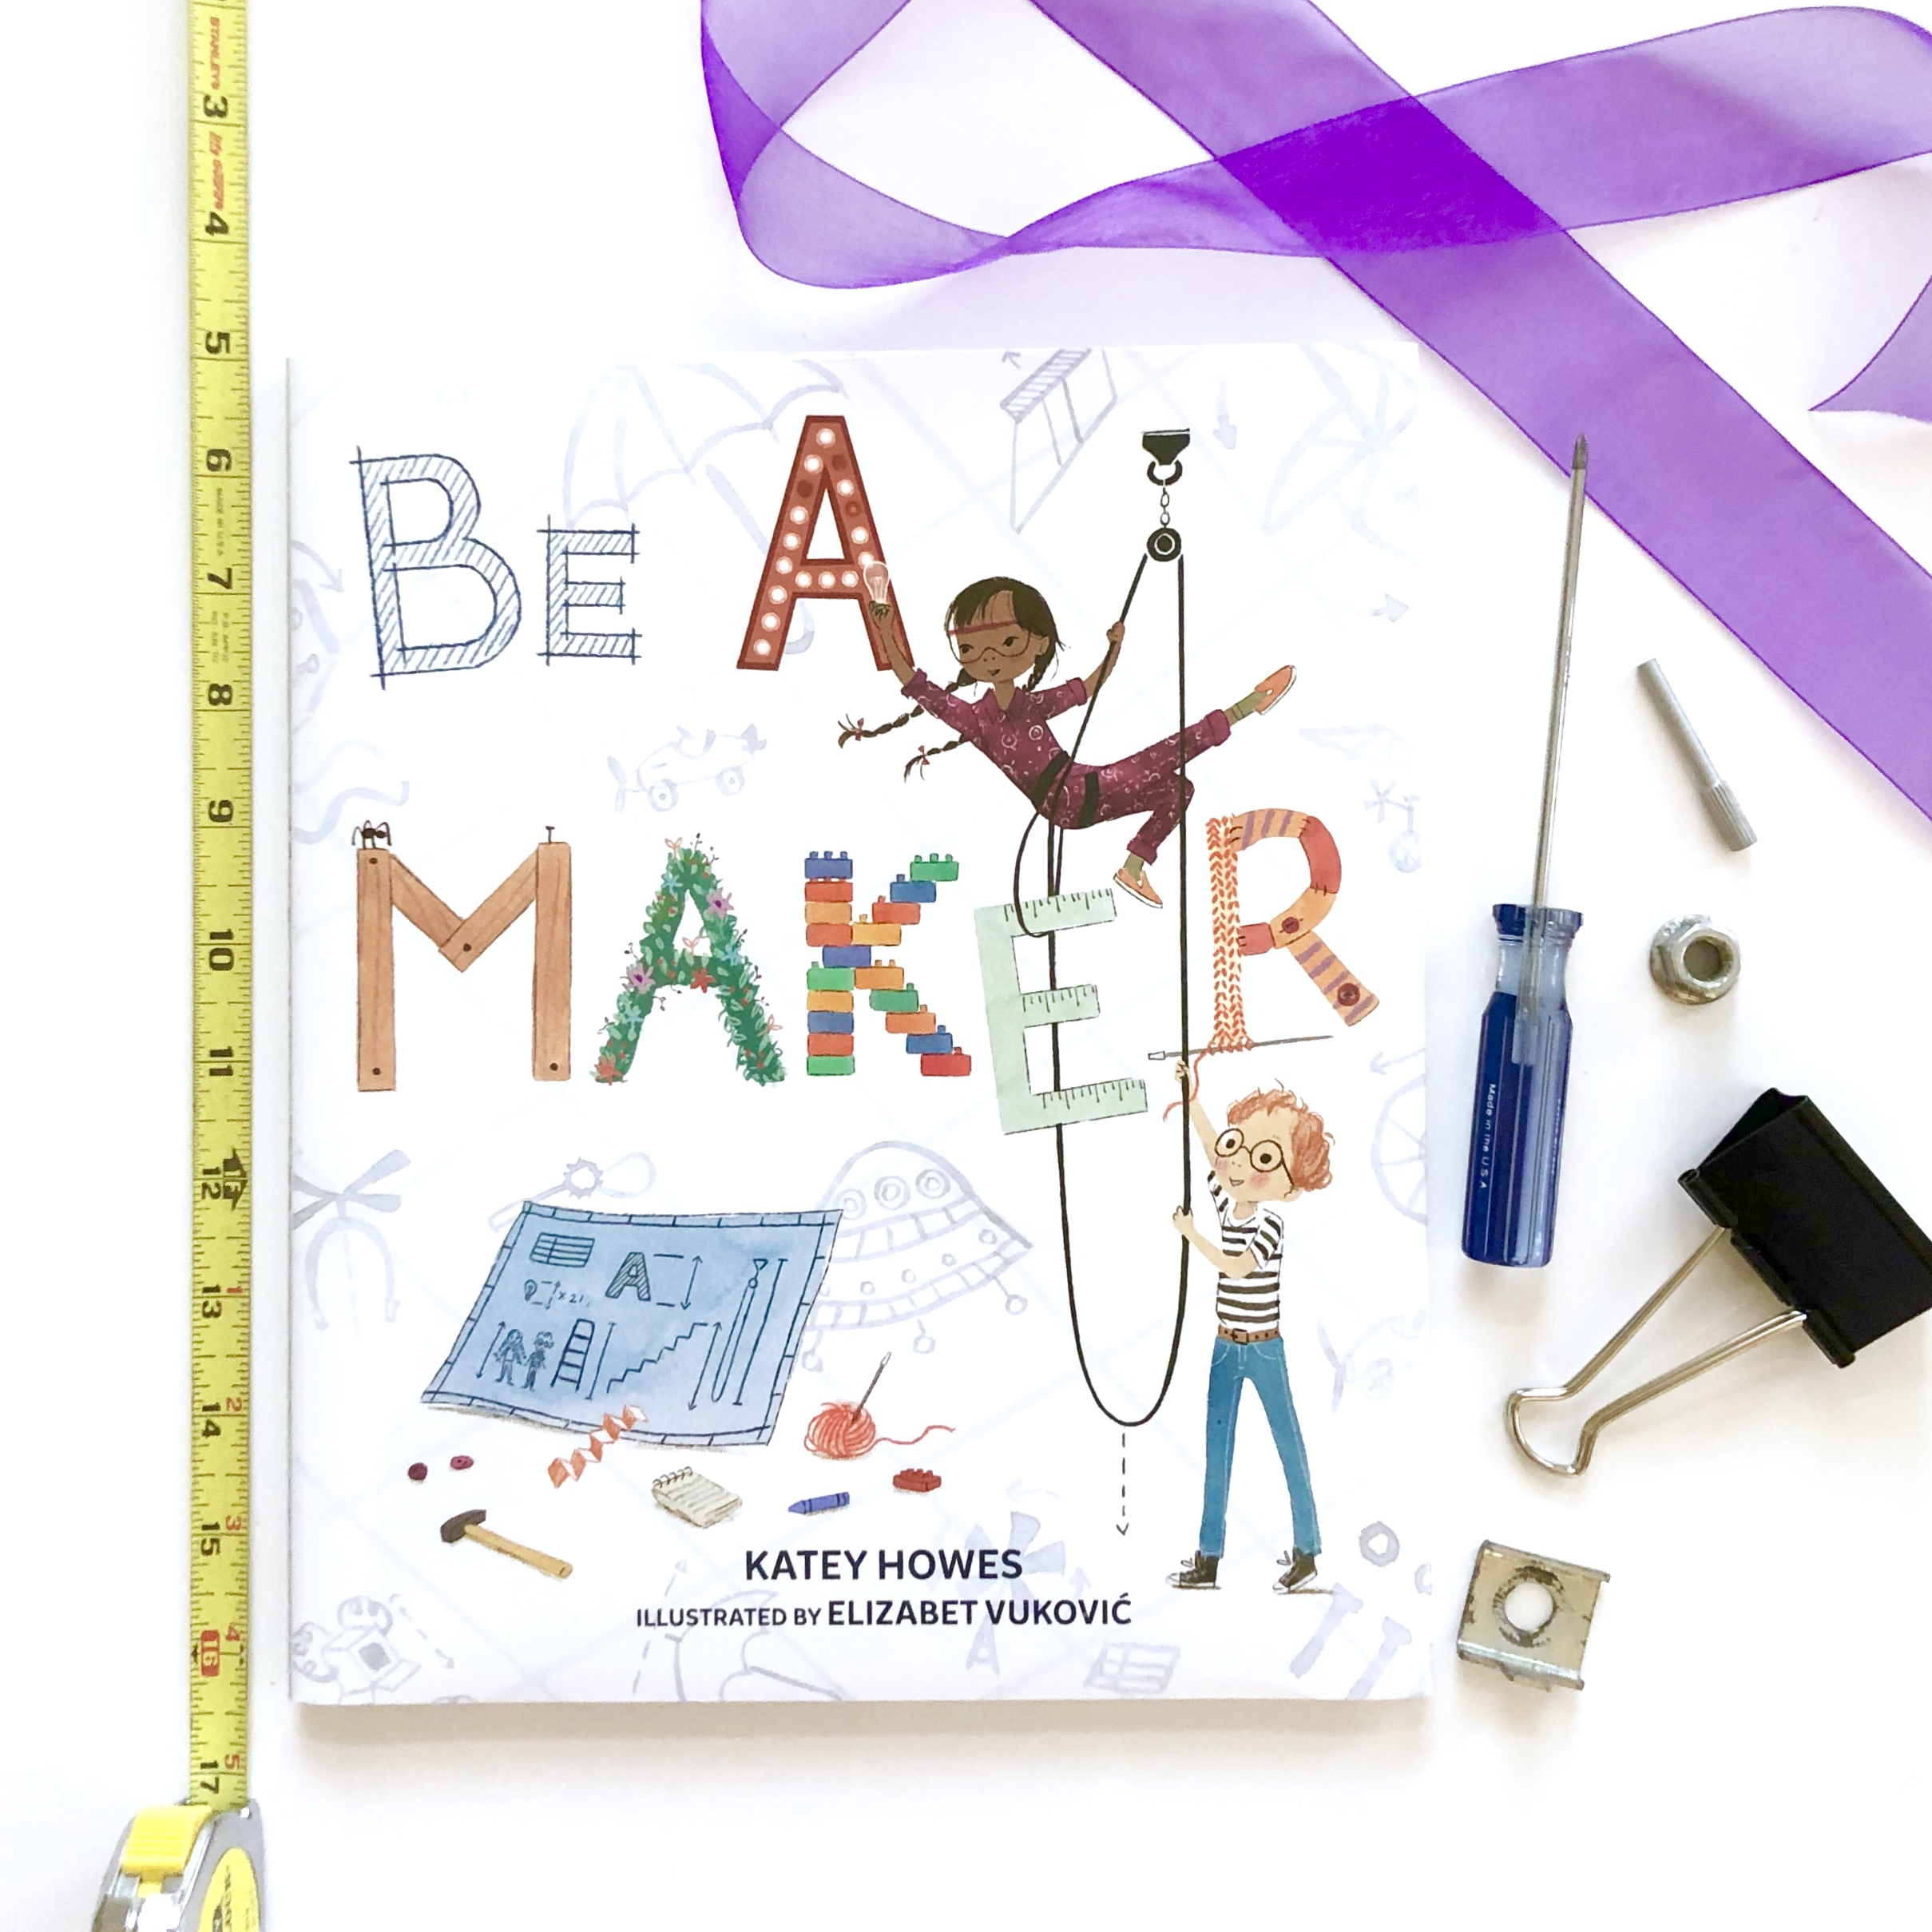 STEM Books Be A Maker by Katey Howes.jpg